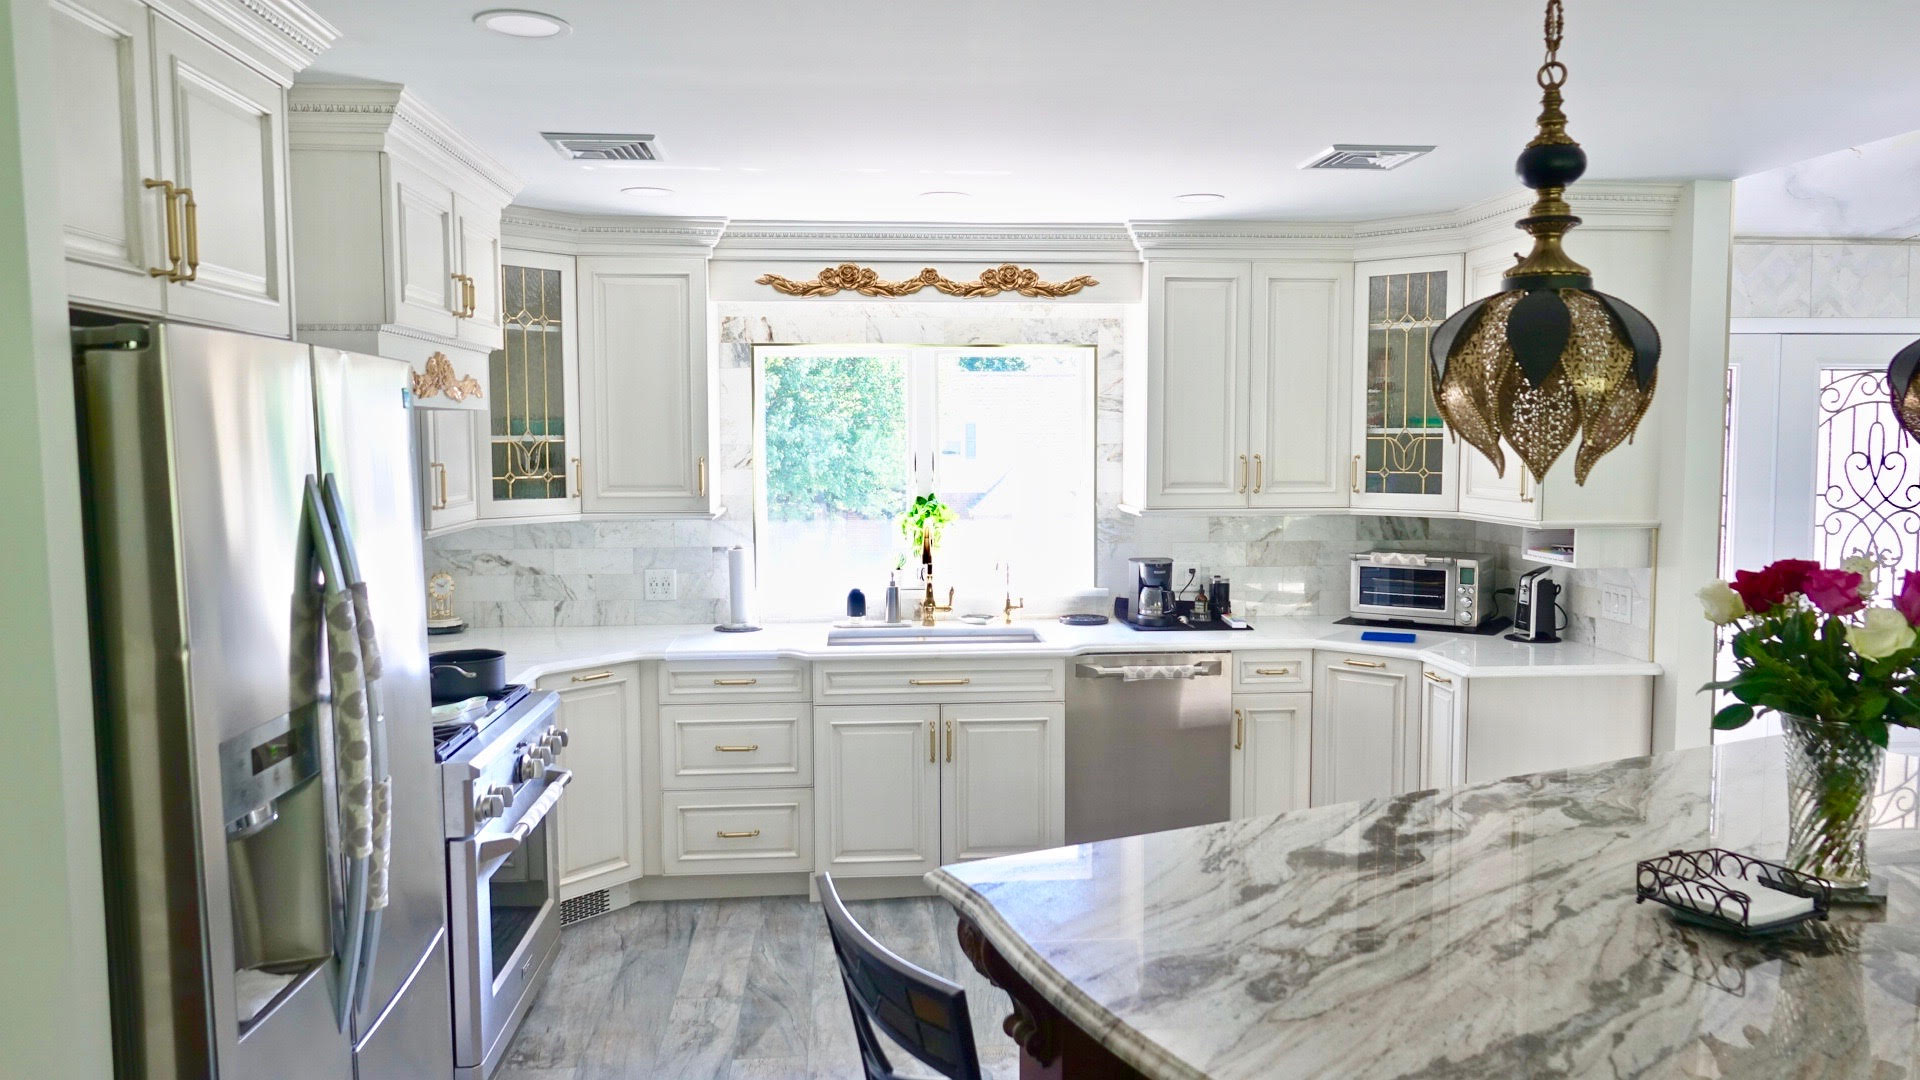 gray floors, white cabinets, gold hardware, and gold rose design over the kitchen sink